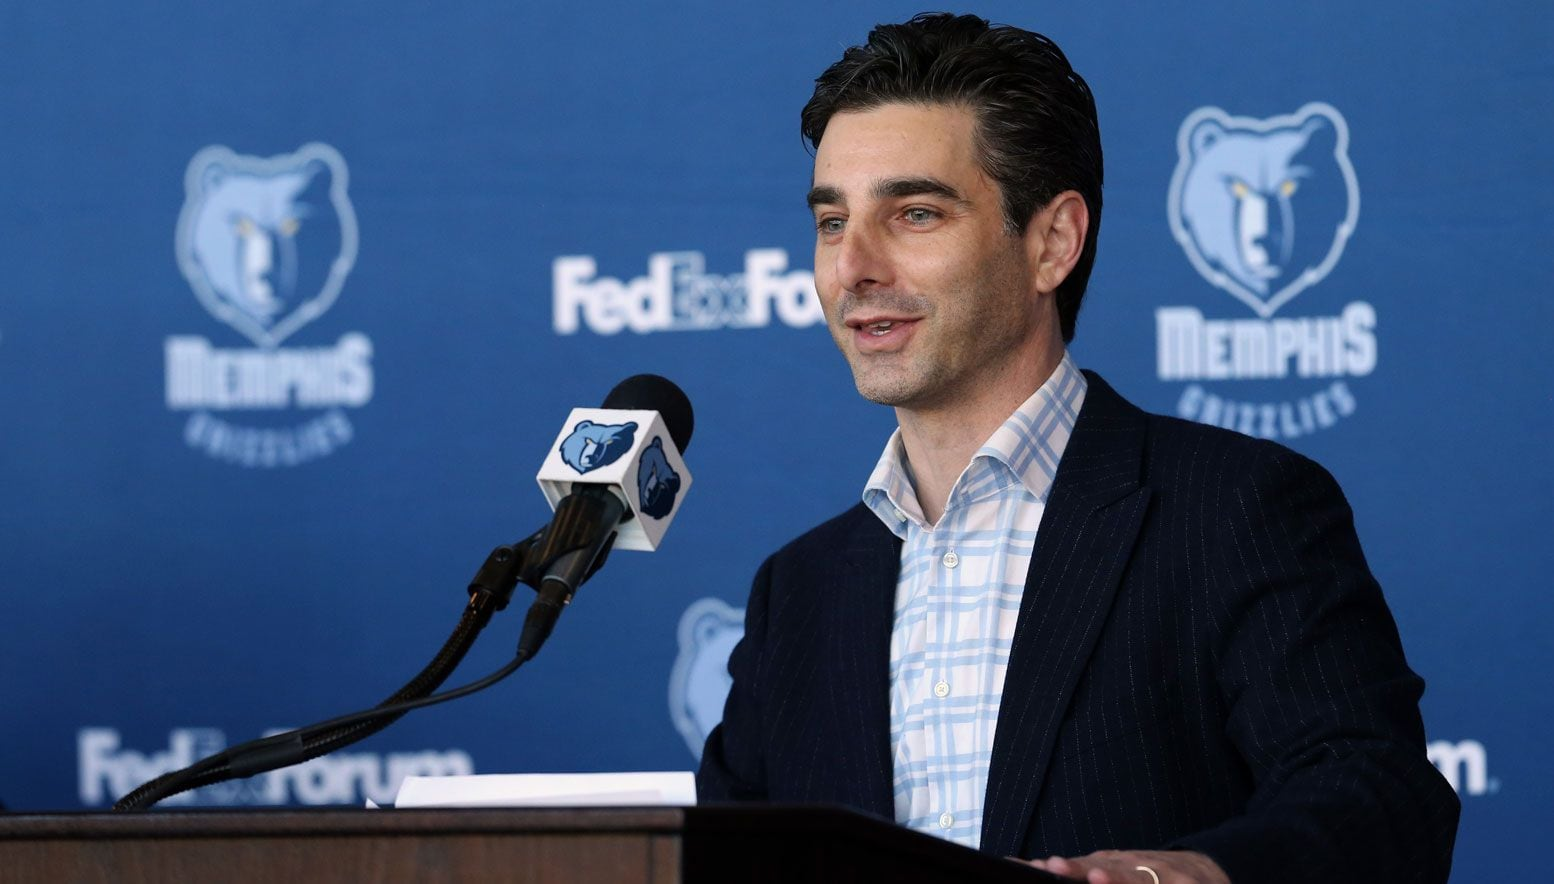 Jason Wexler speaking during a press conference